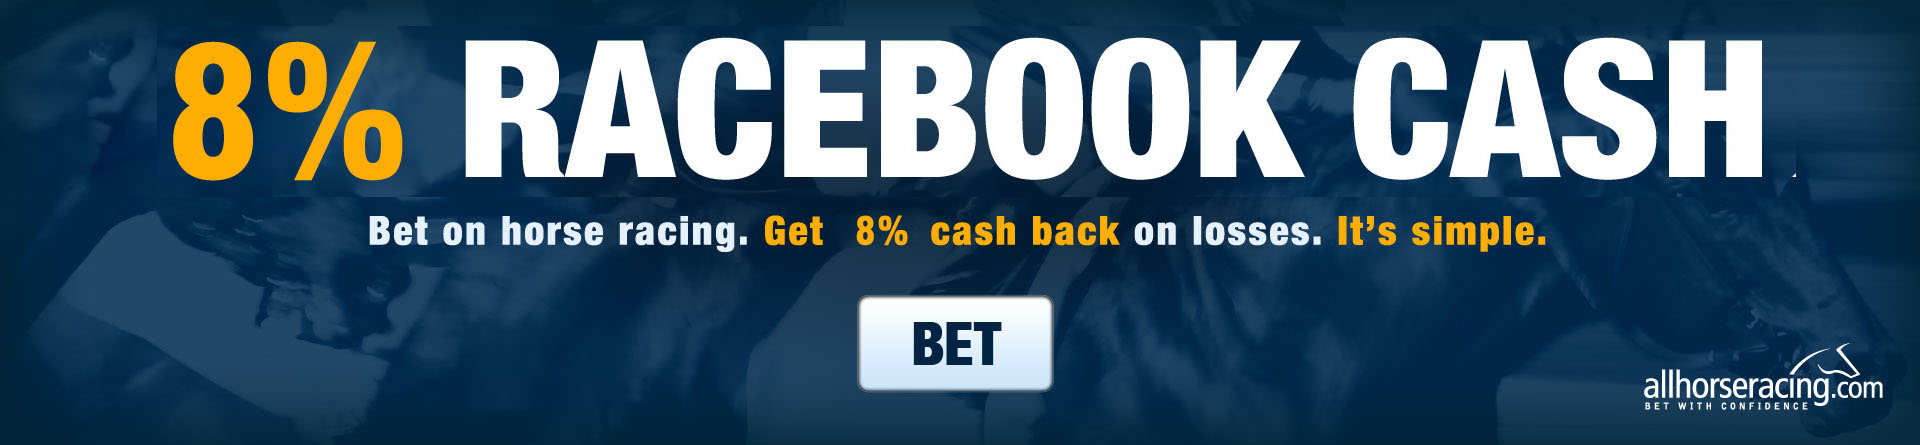 Get 8% Cash Back on Horse Racing